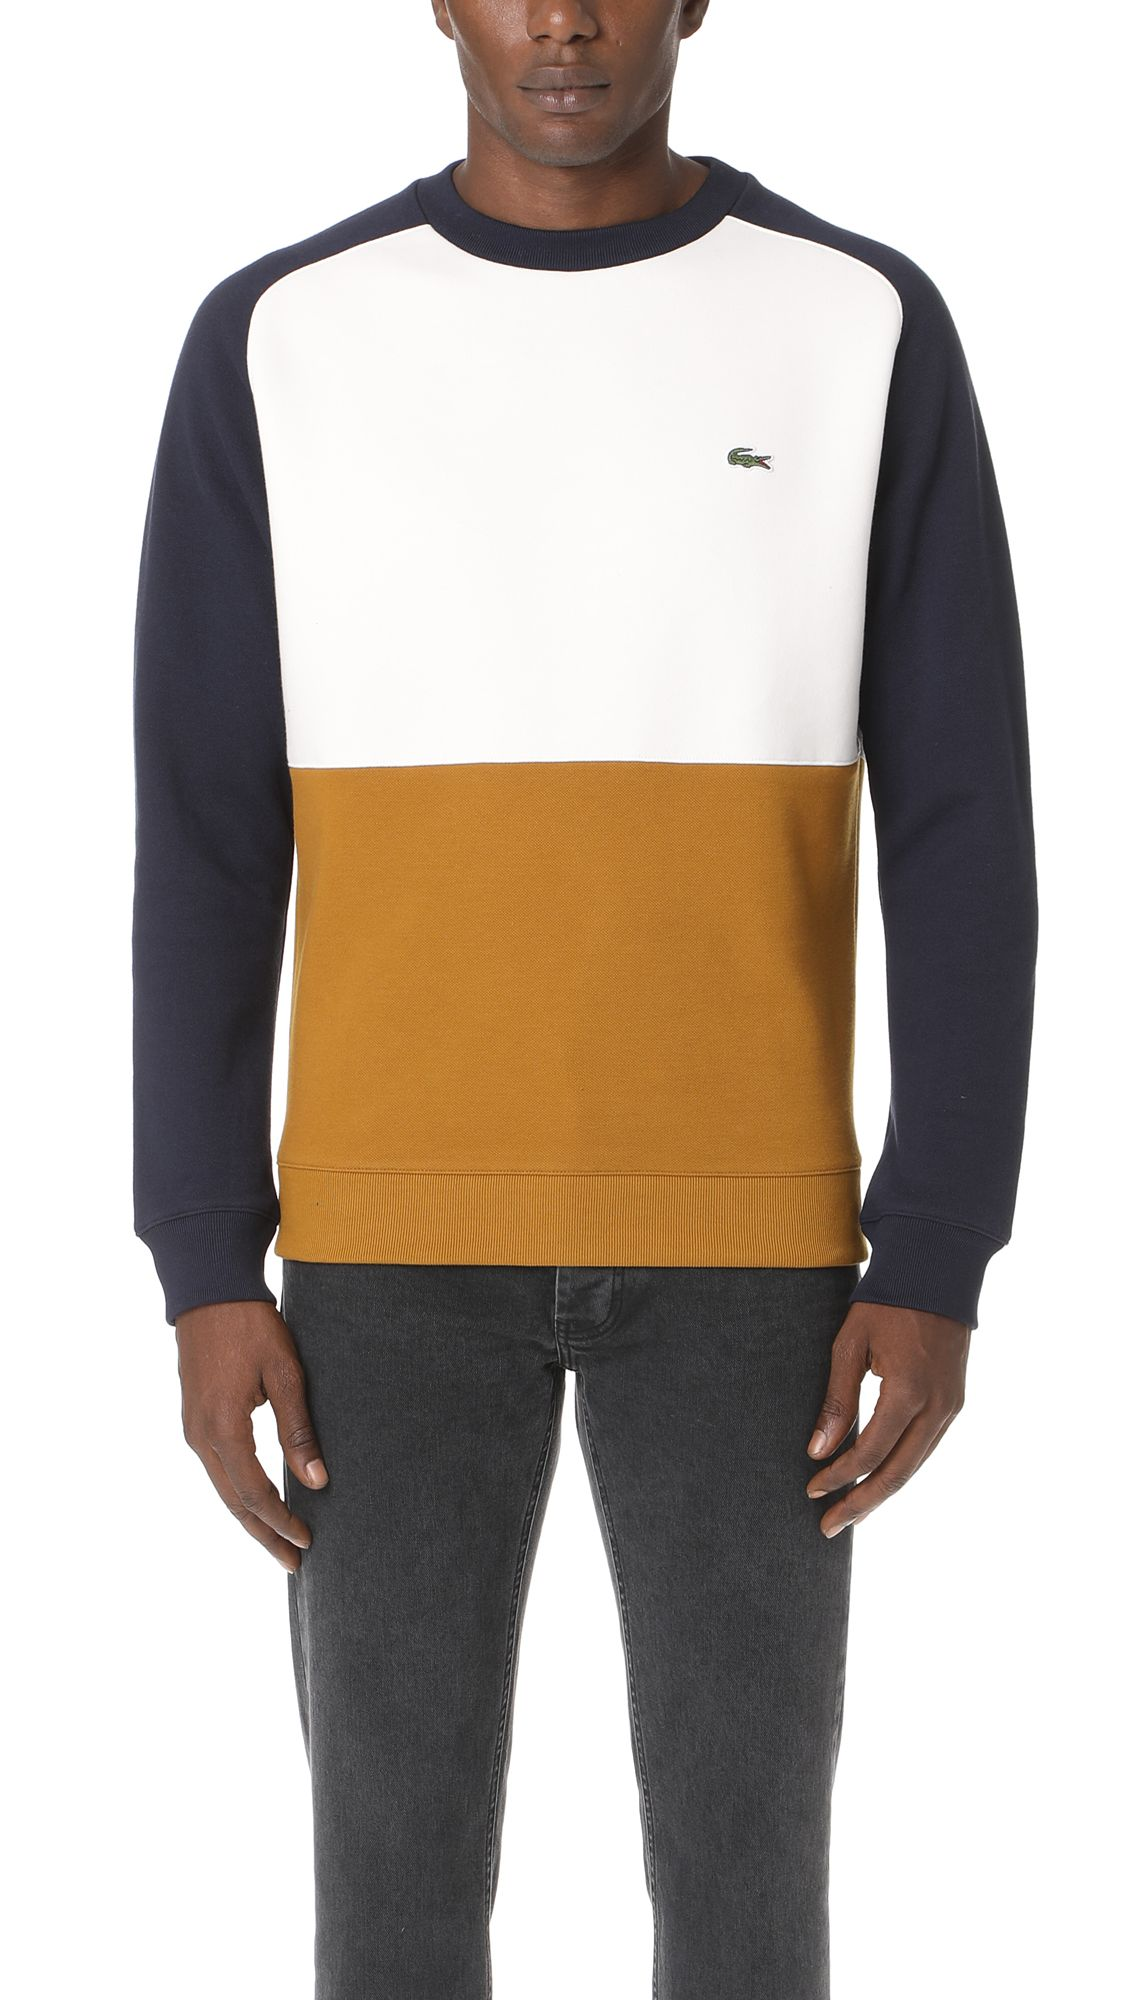 ba1a581e53 LACOSTE Brushed Pique Fleece Colorblock Sweatshirt. #lacoste #cloth ...